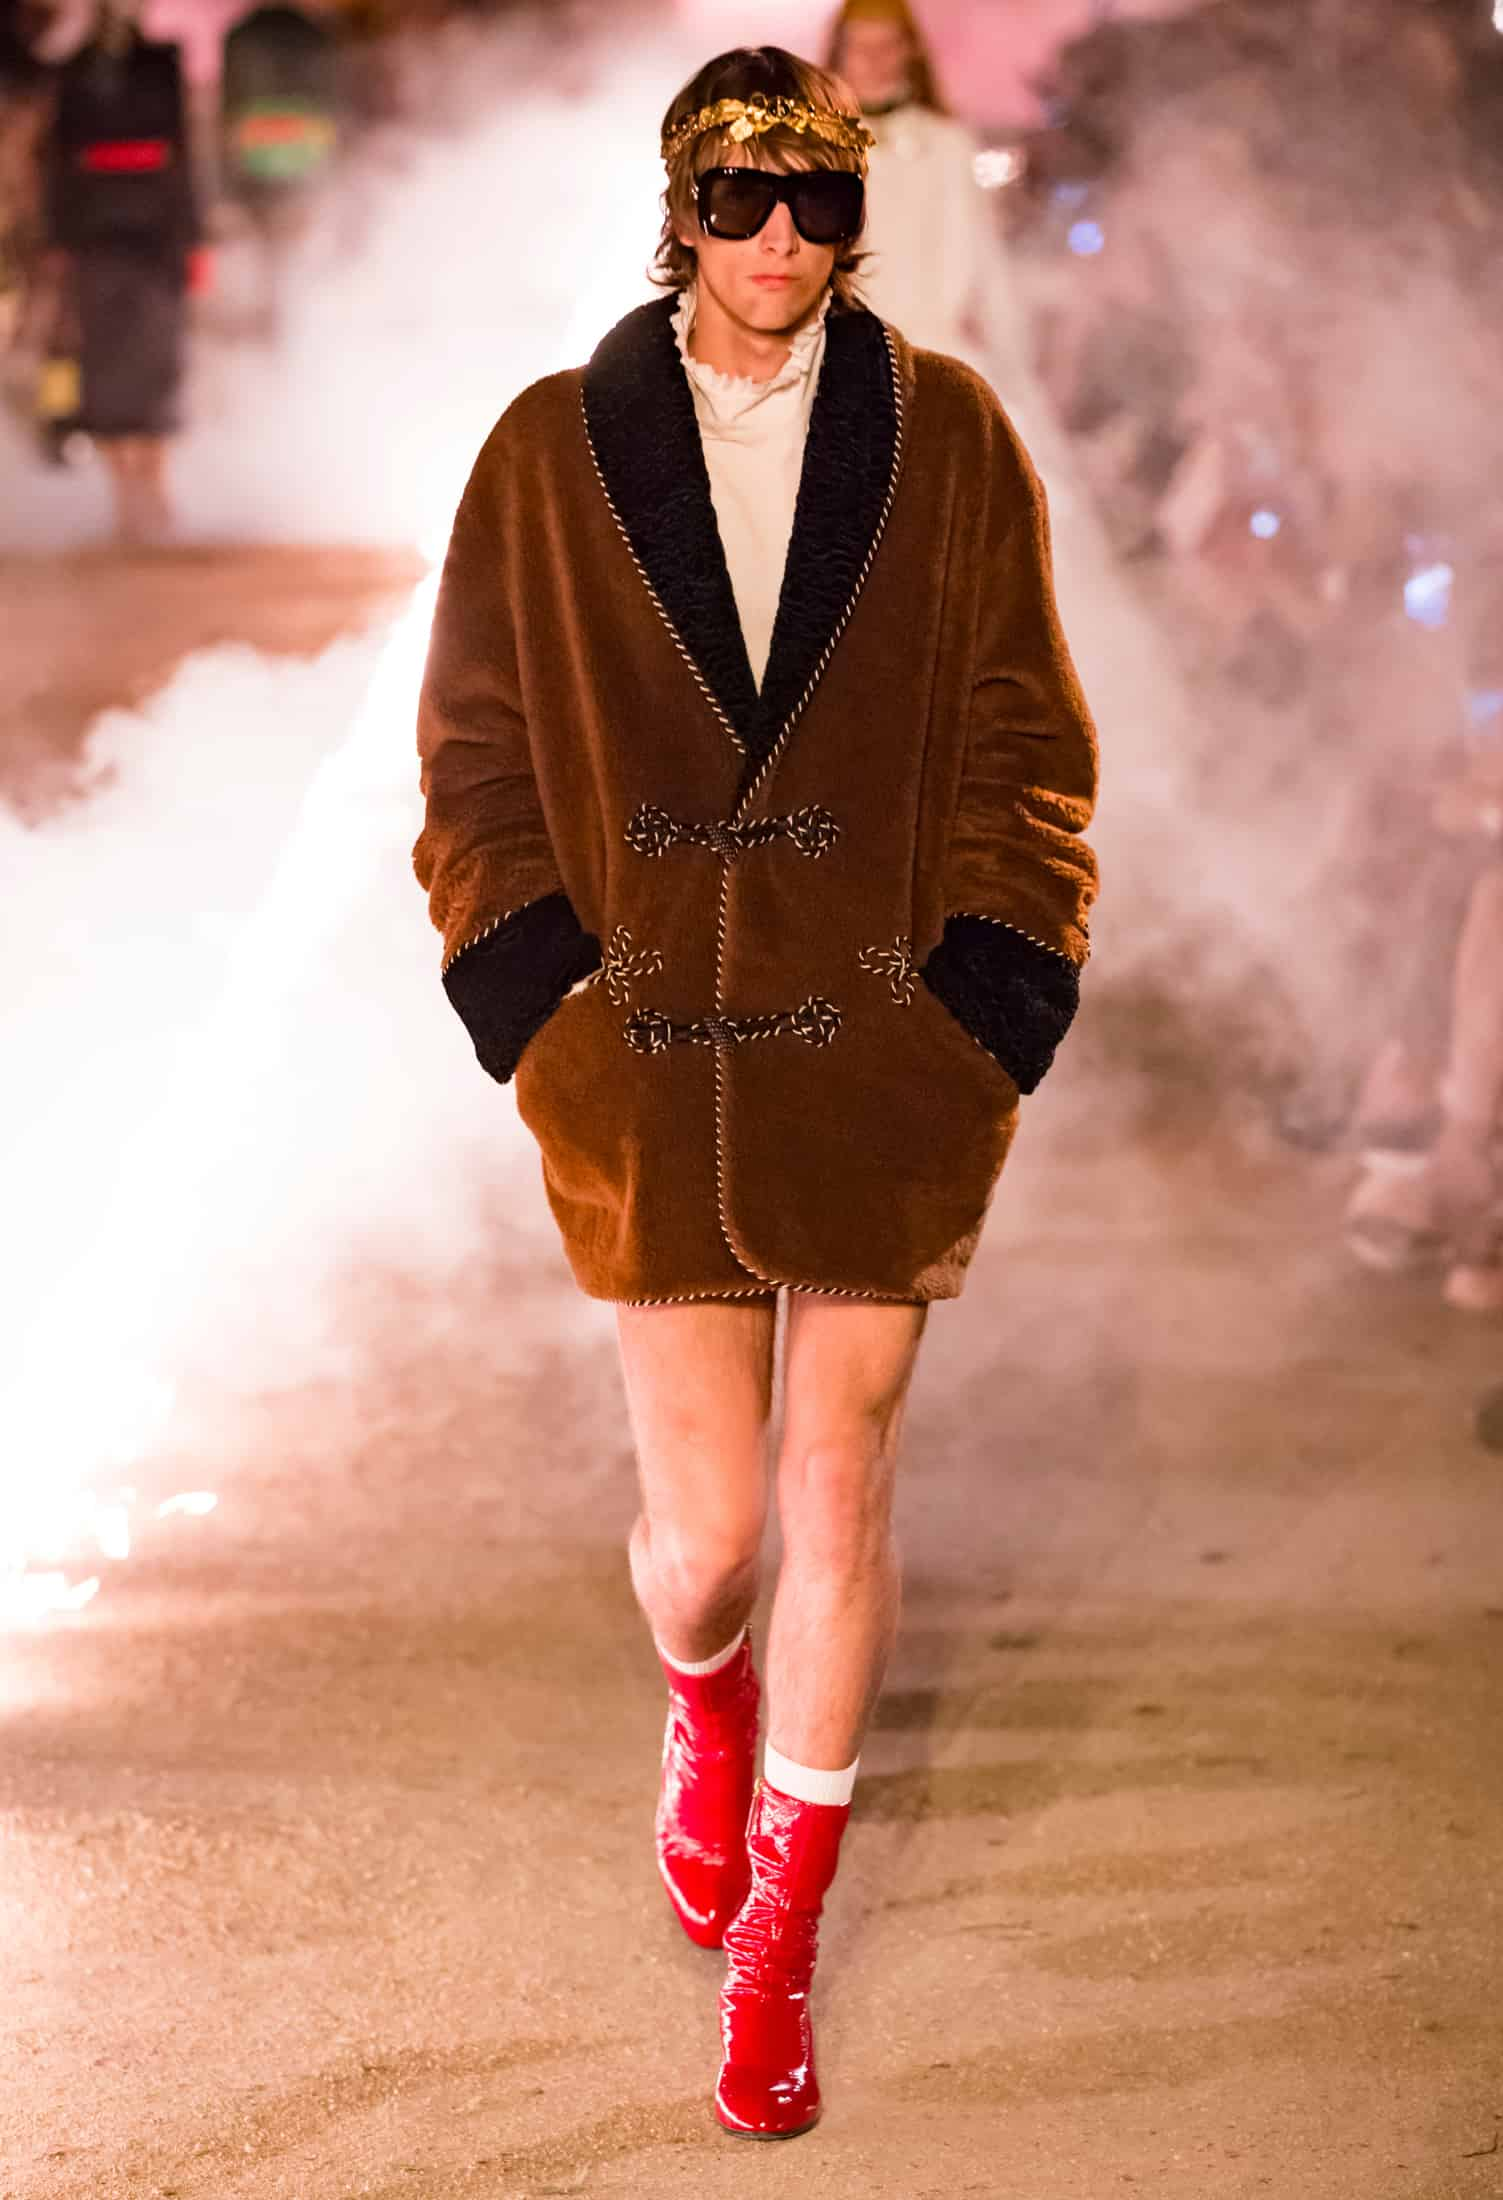 Gucci S 2019 Cruise Show Was Creepy Af In A Good Way